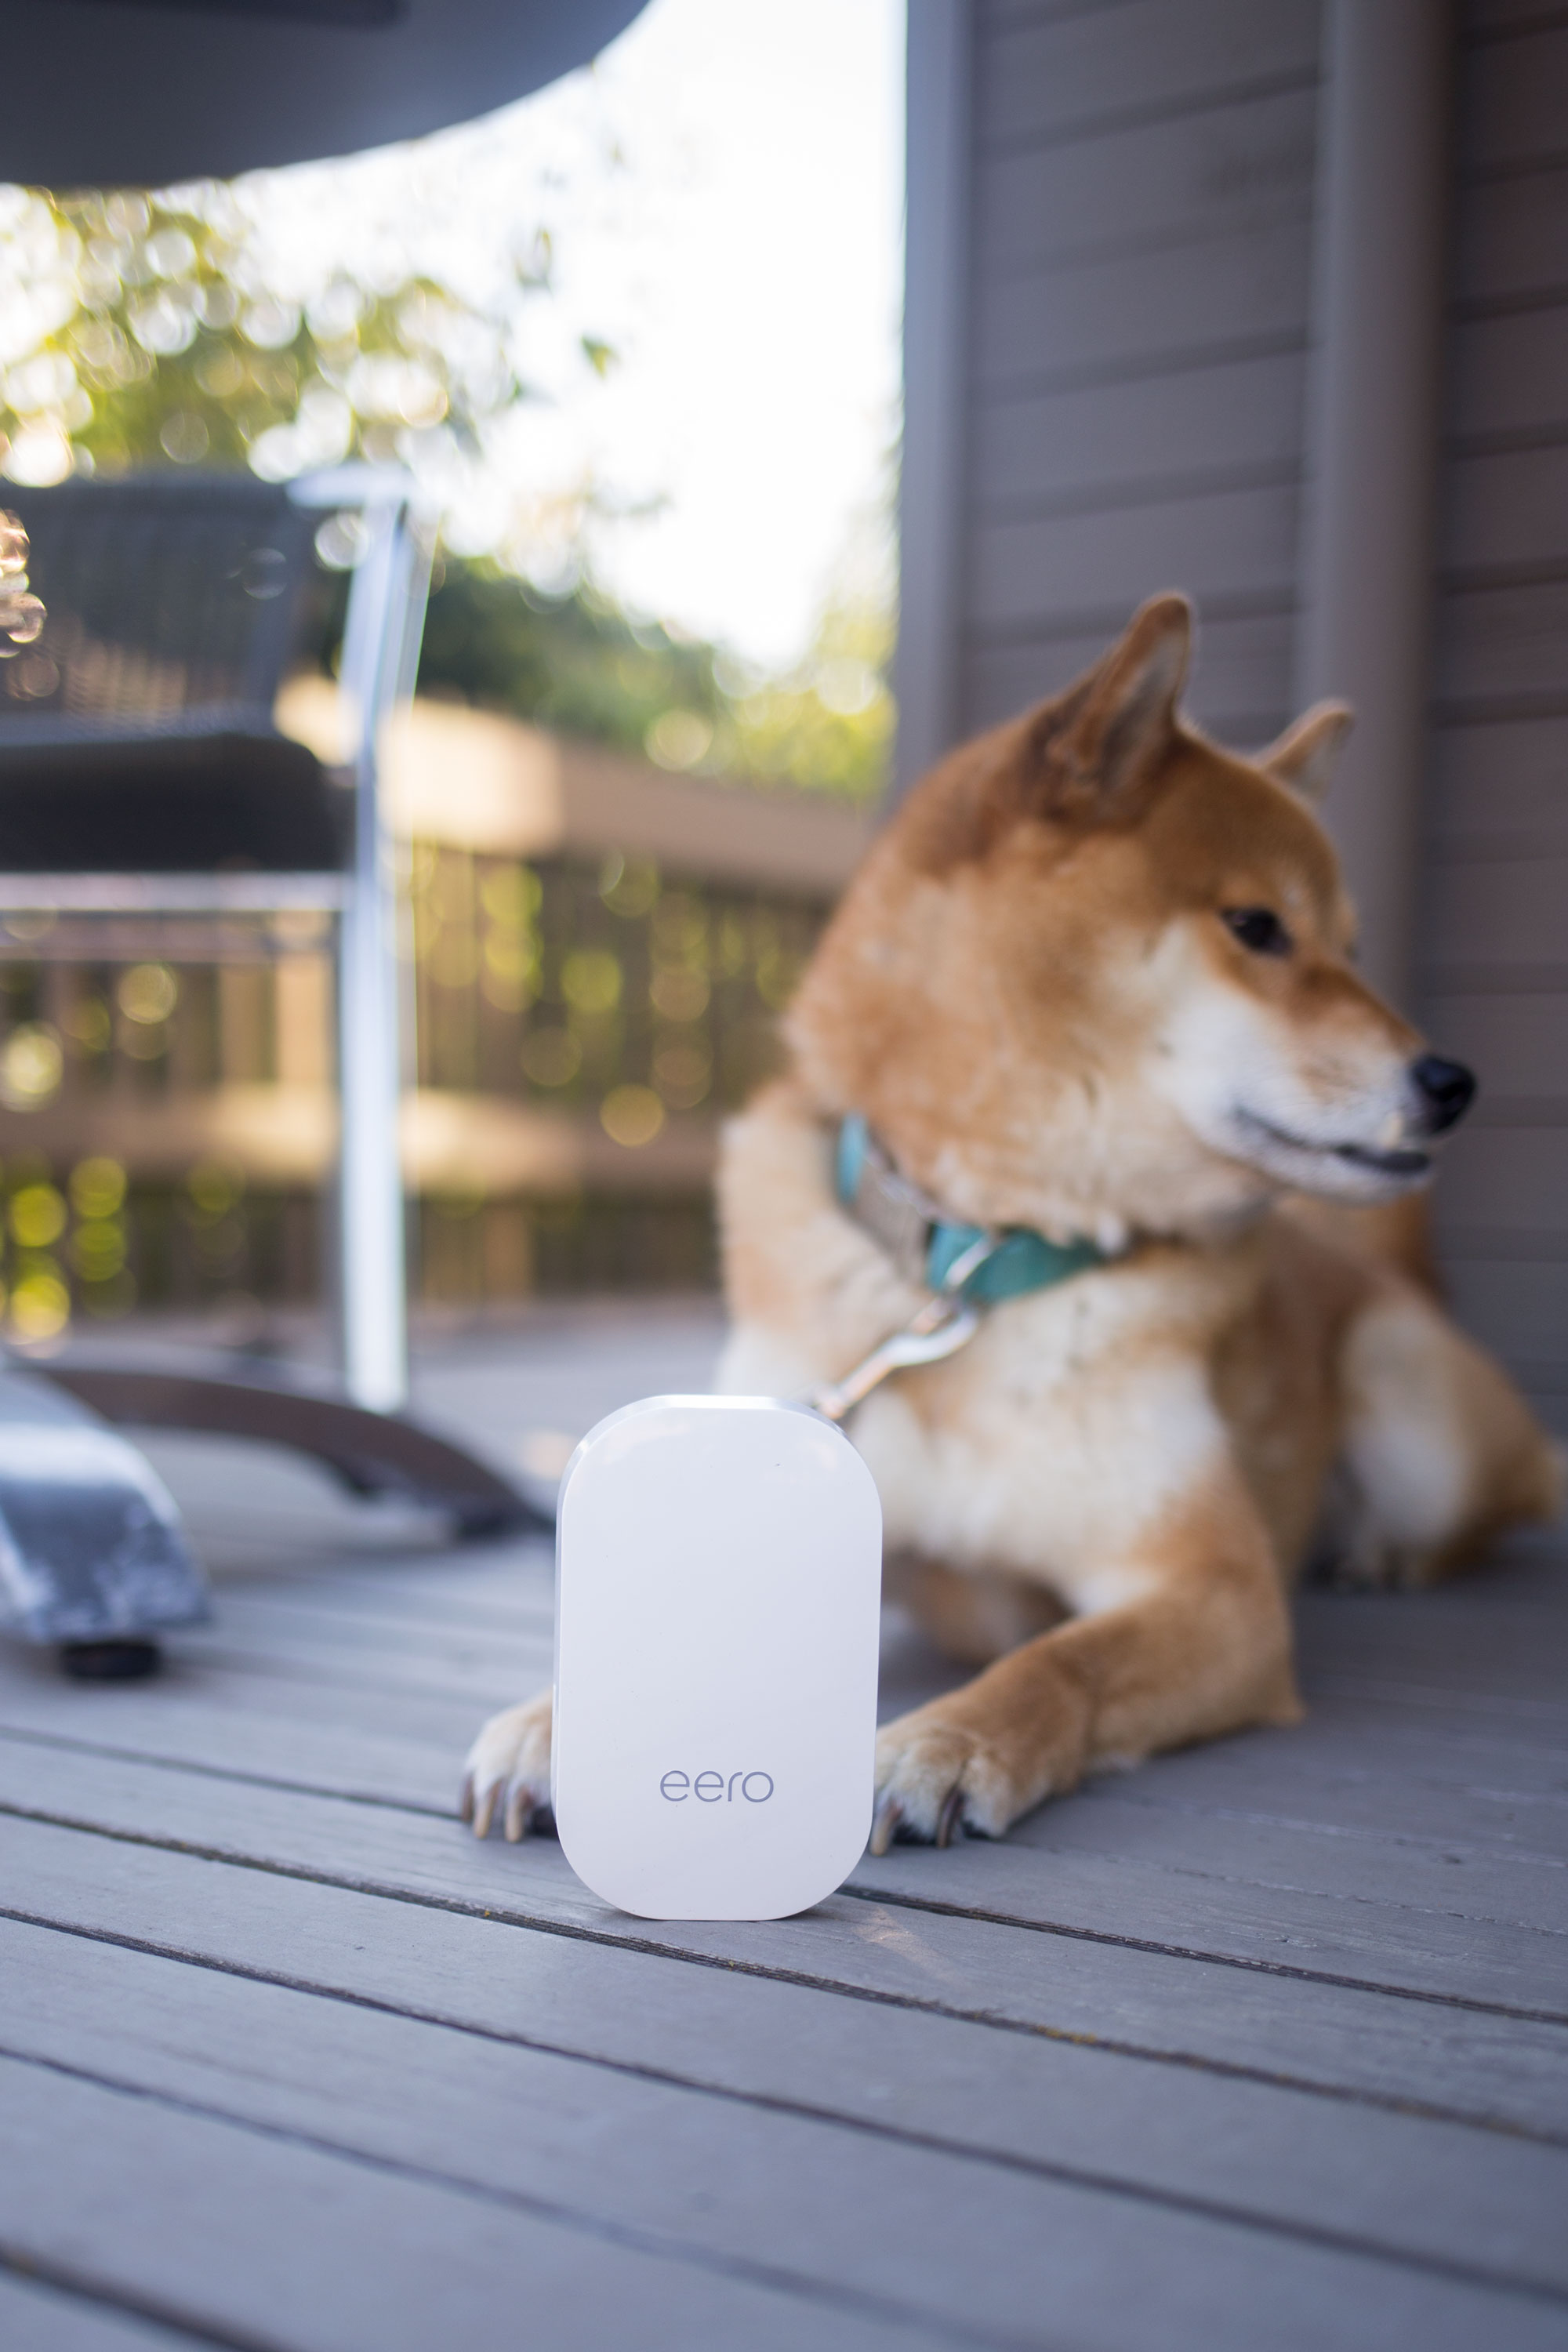 The Easiest Solution for Home WiFi // eero Review // Hello Rigby Seattle Lifestyle Blog